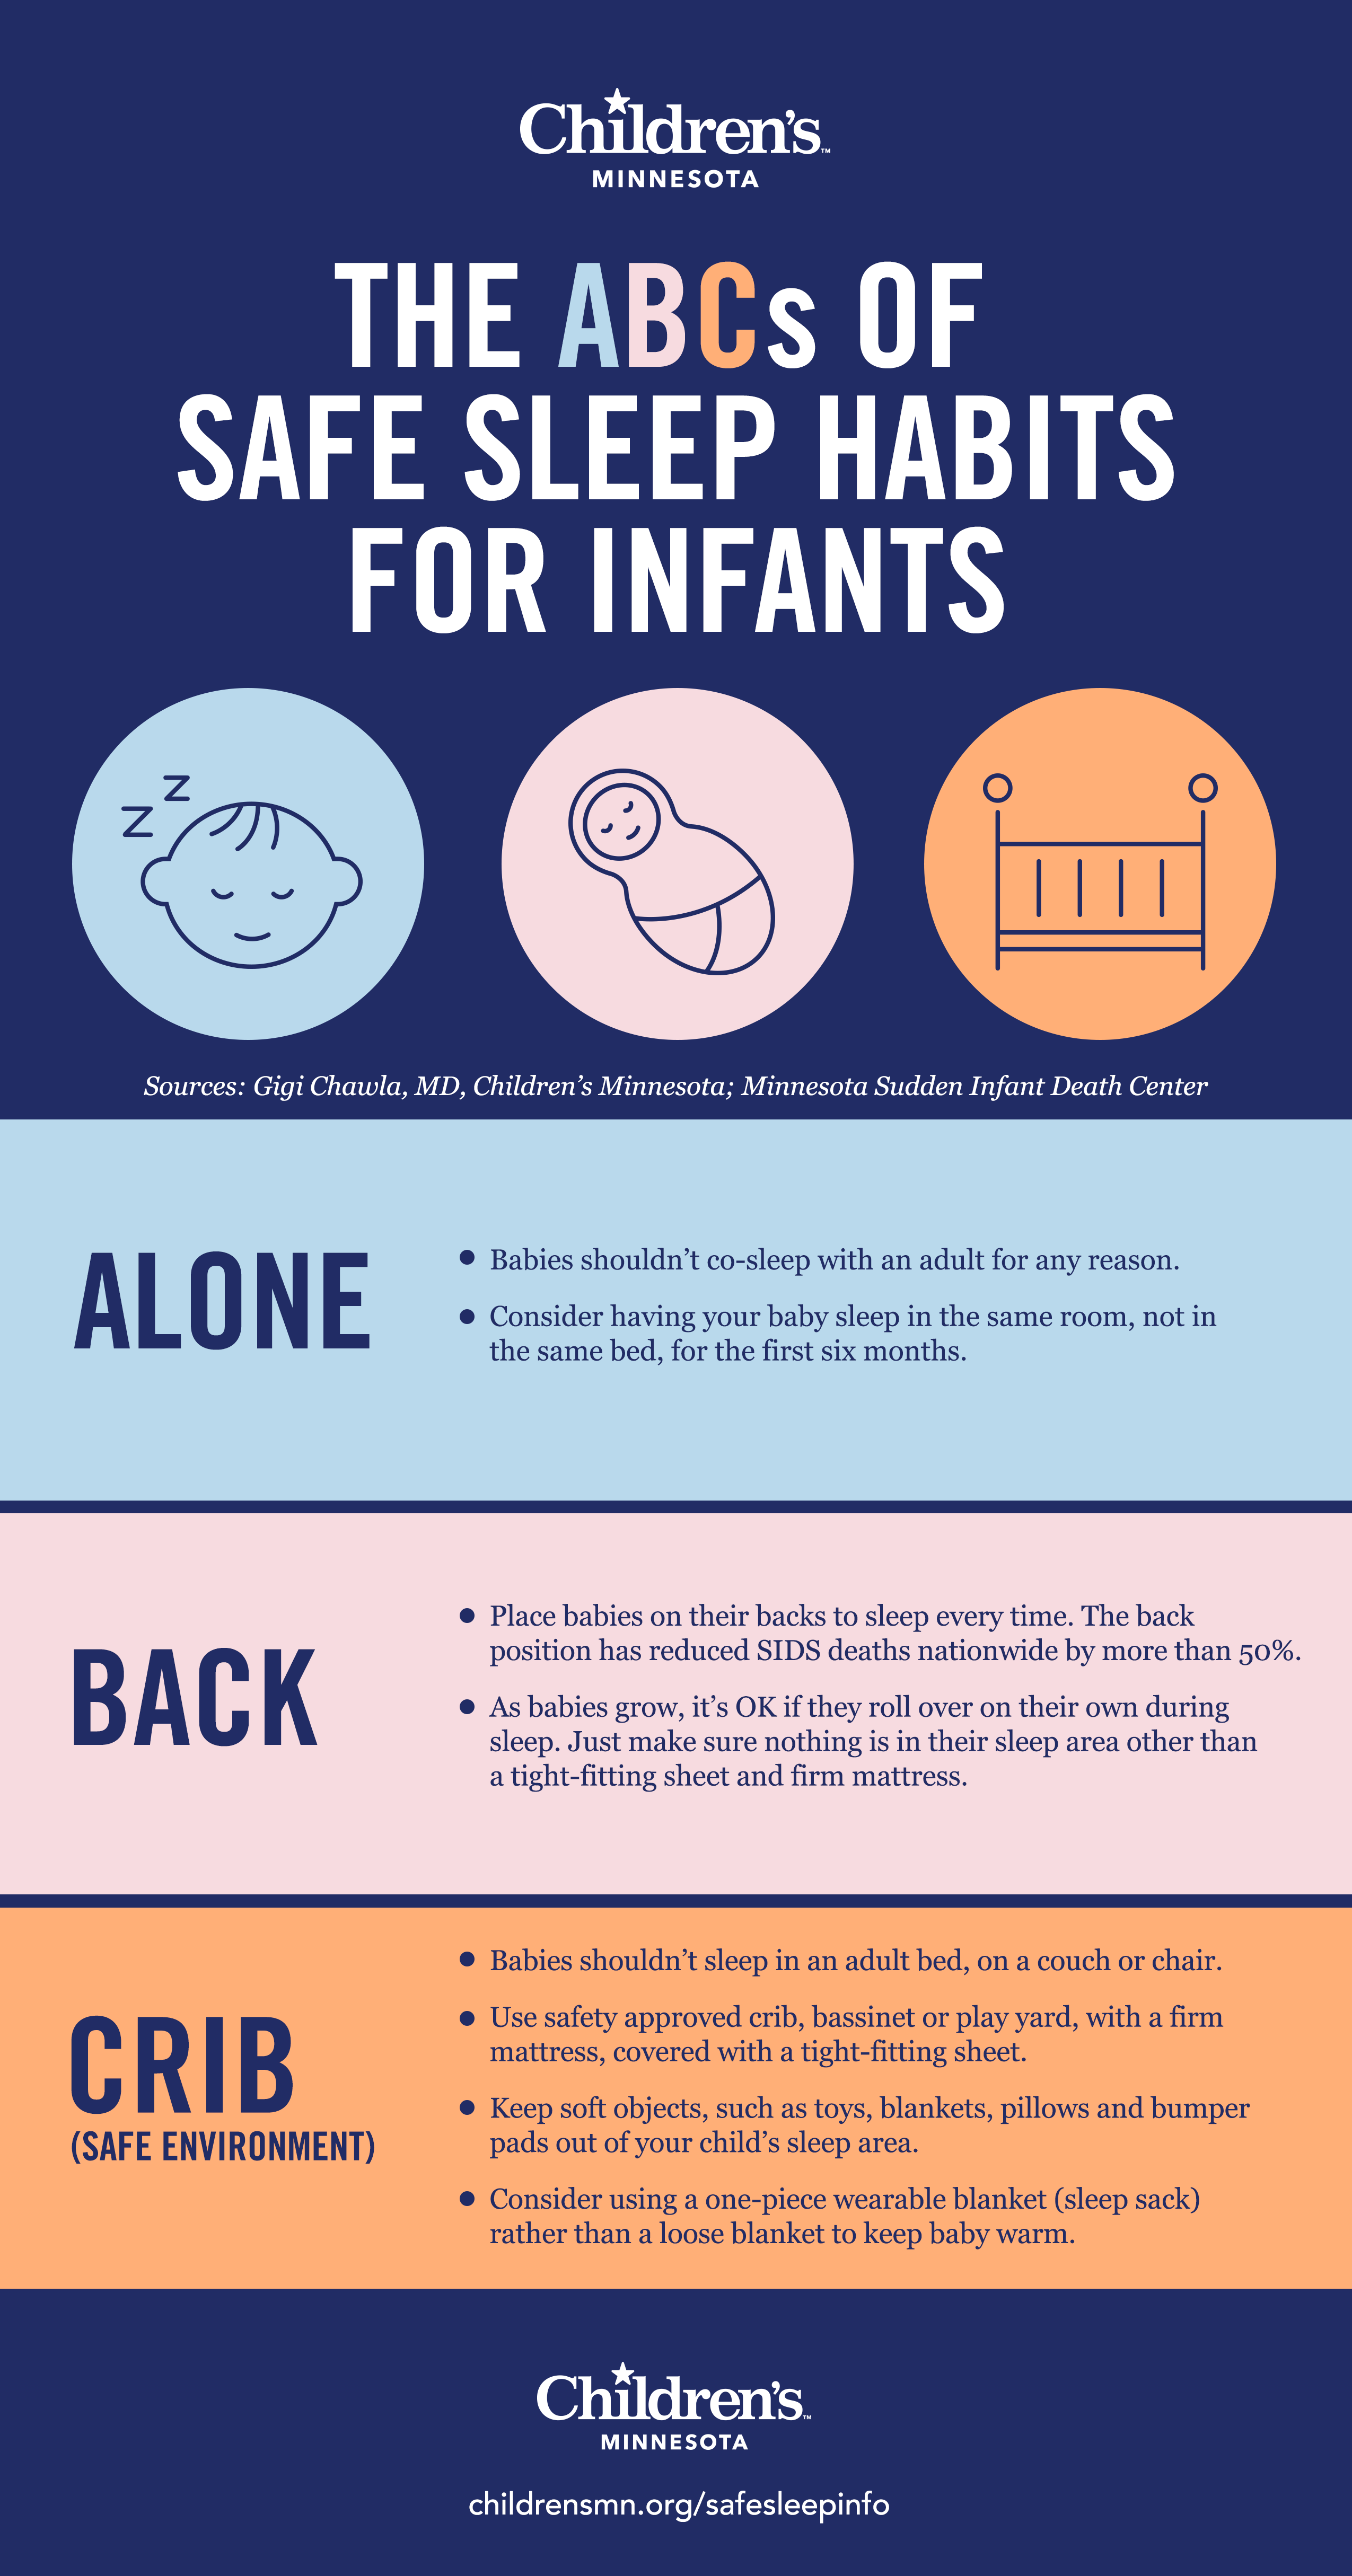 The ABCs of safe sleep habits for infants